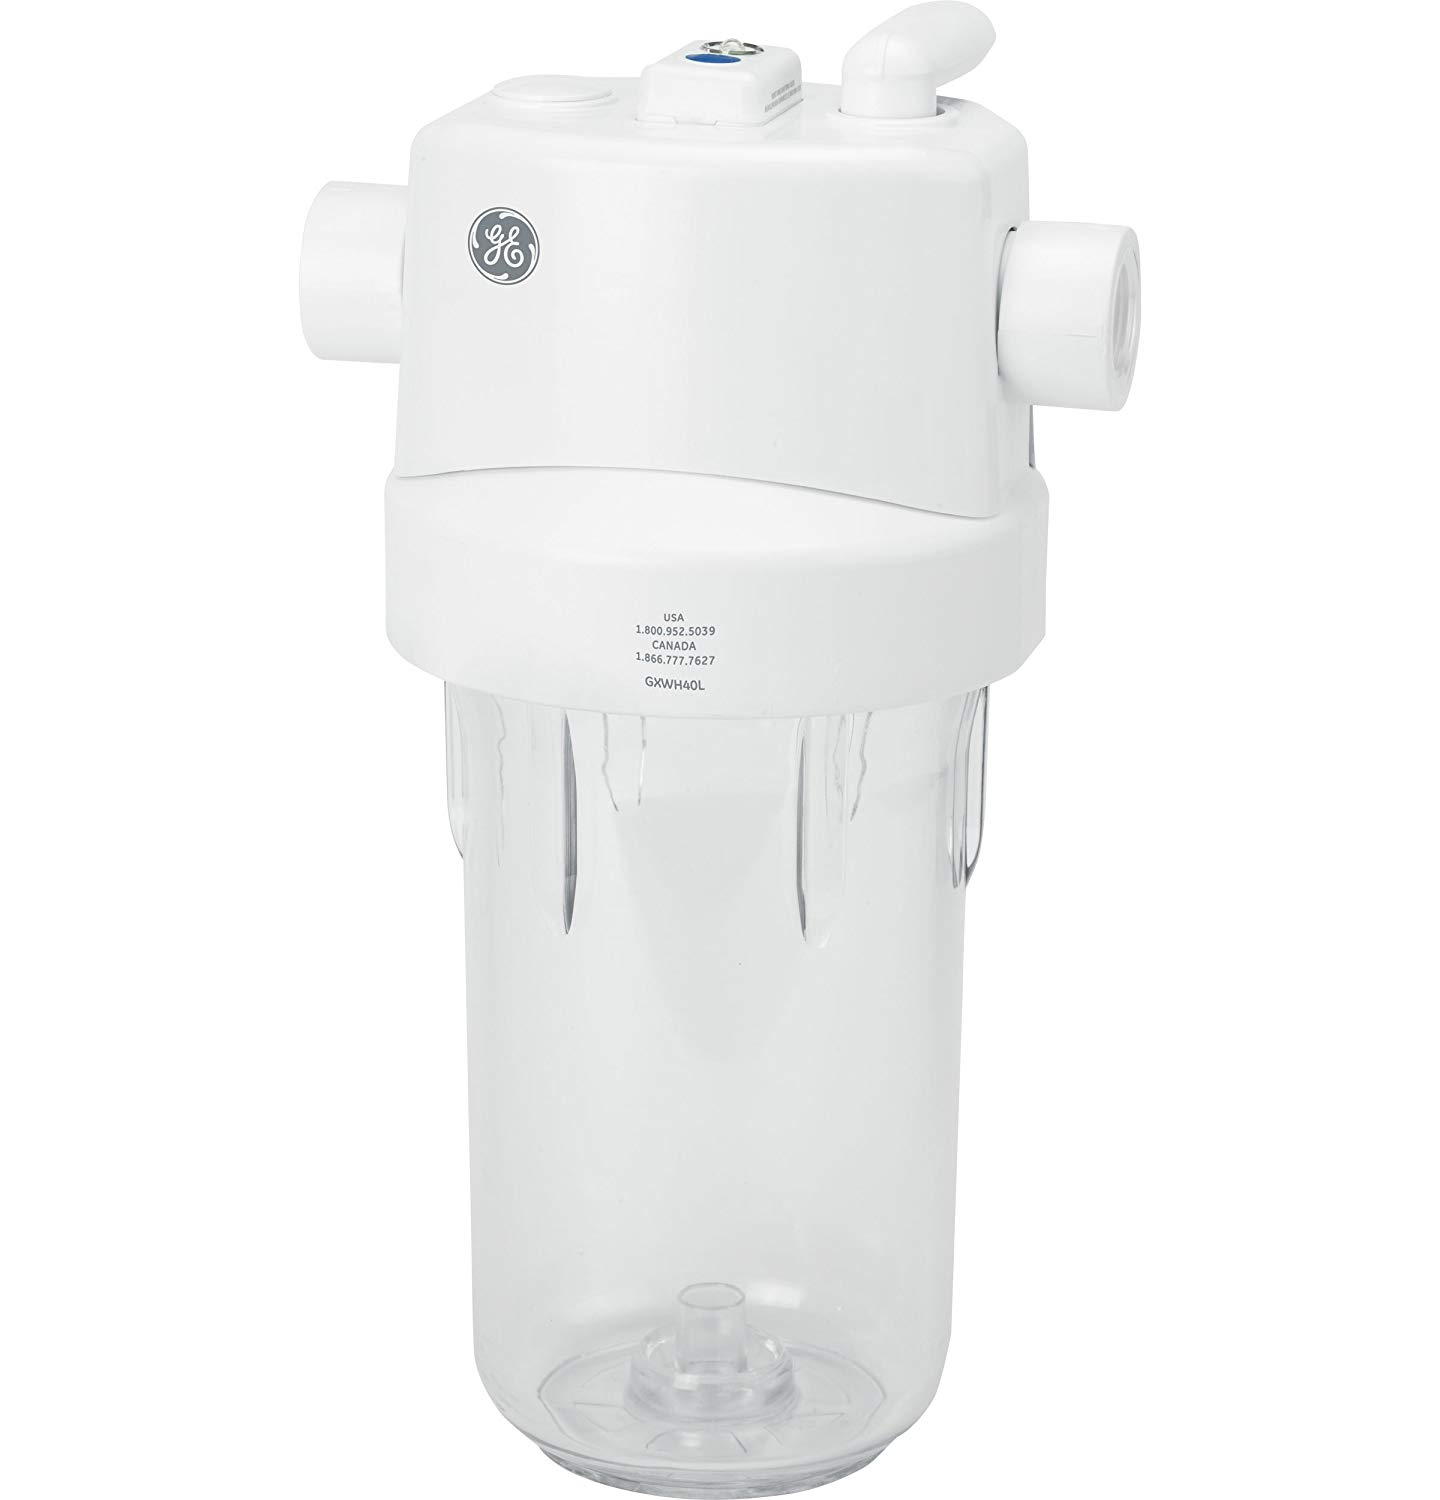 Ge gxwh40l whole house water filter